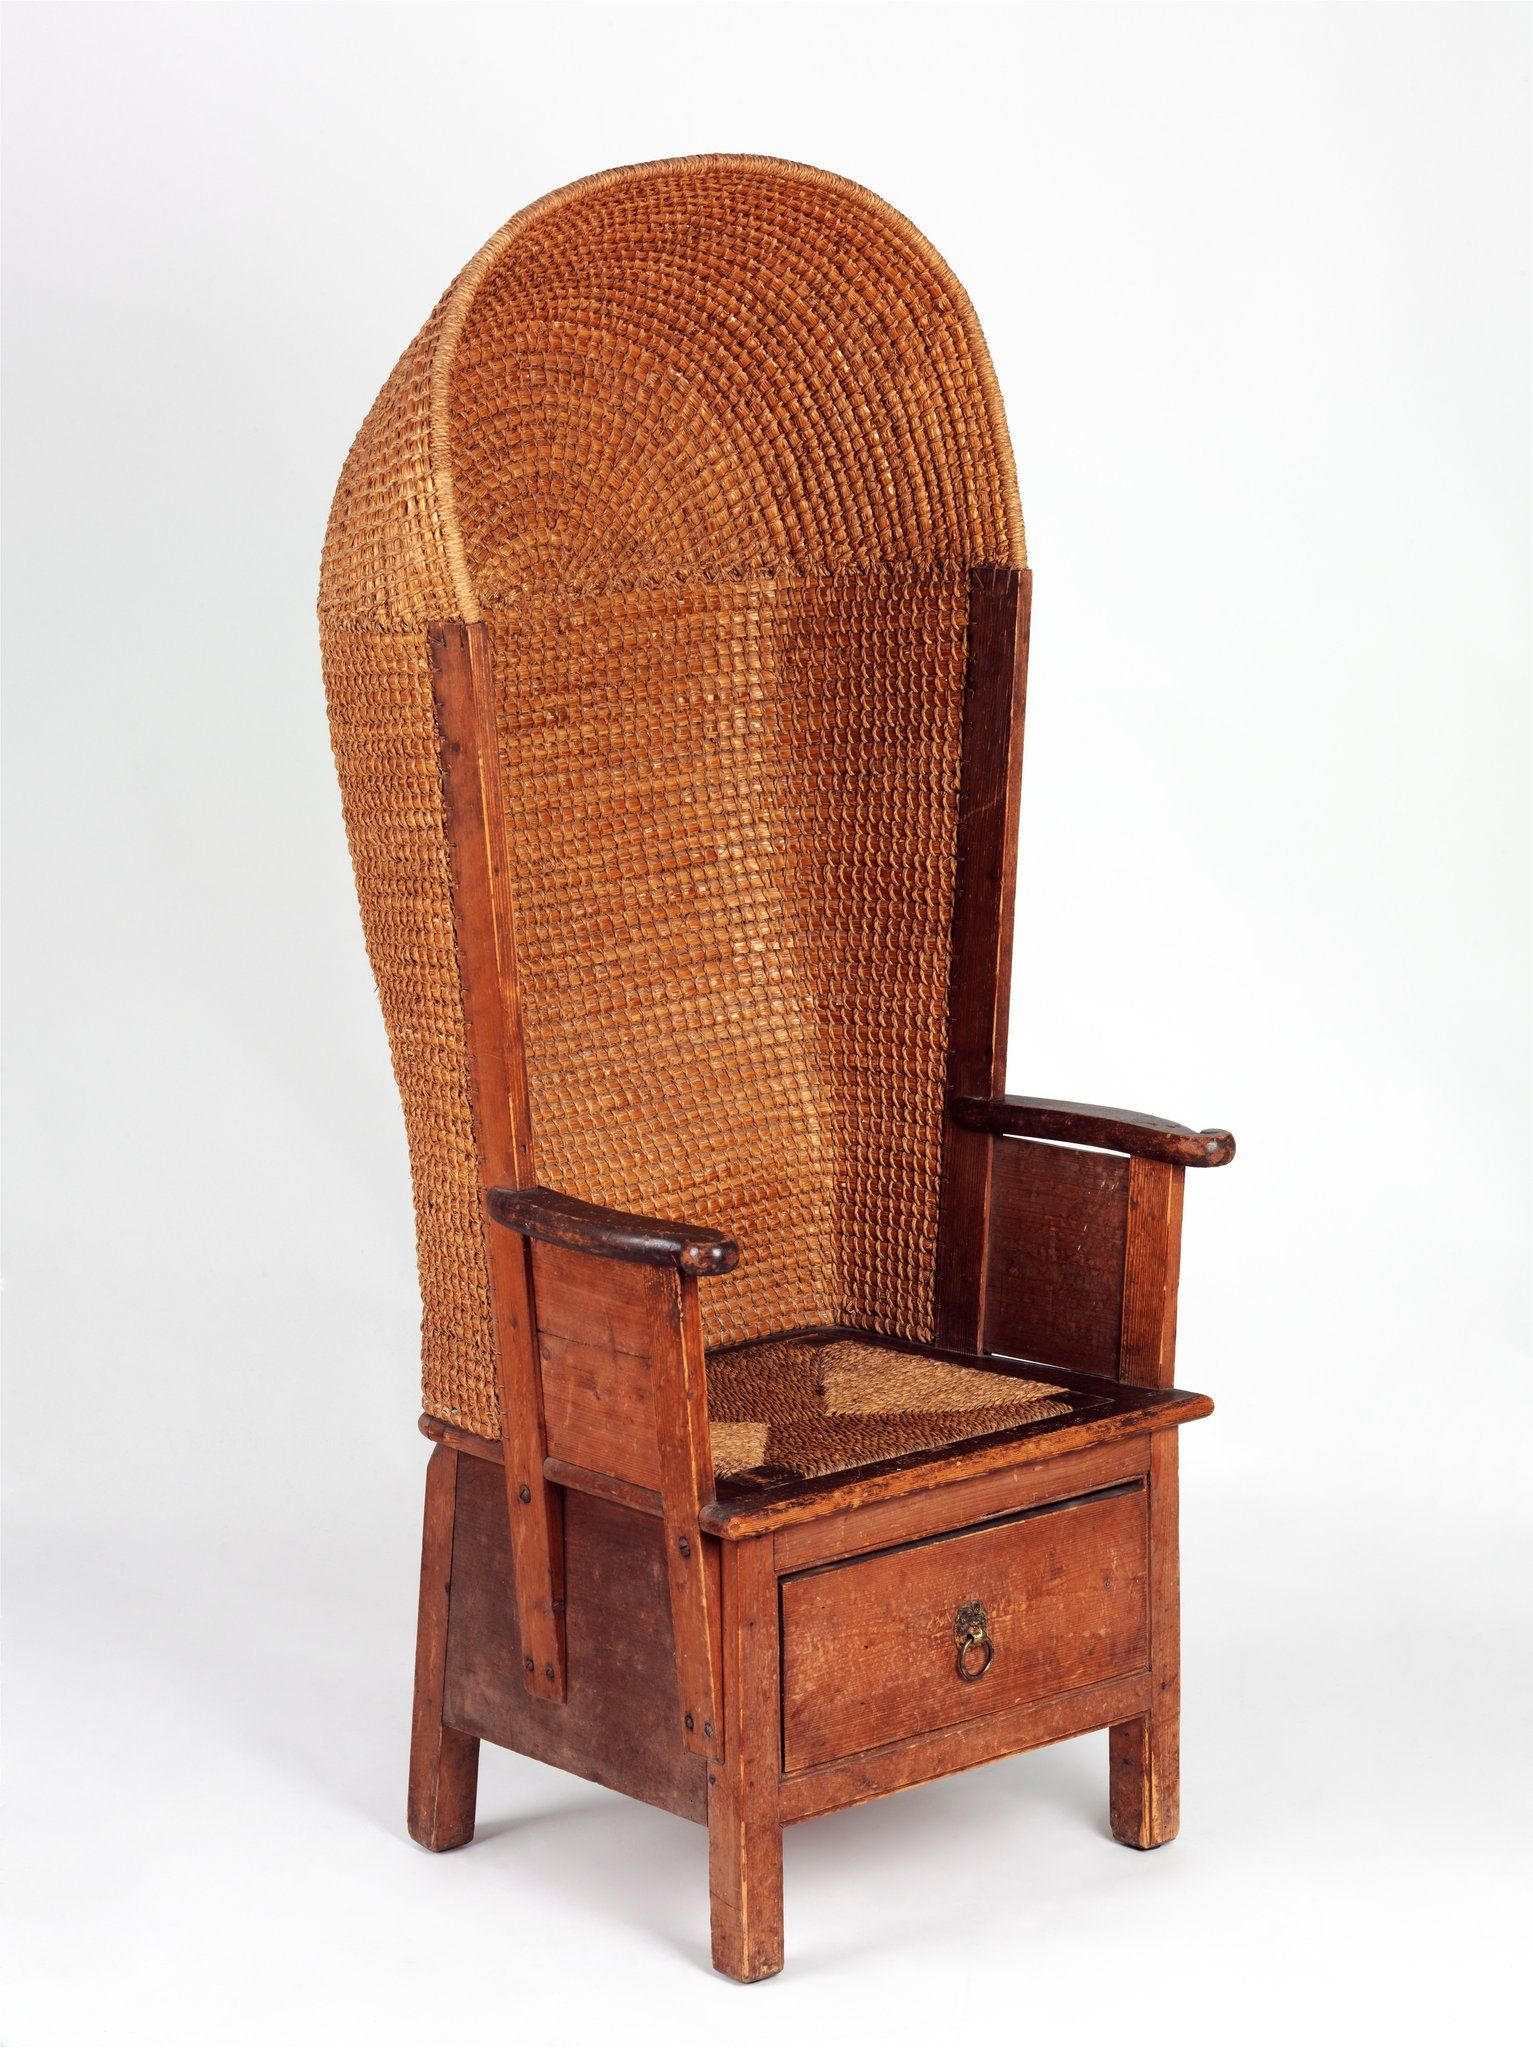 Orkney Chair - one of the most intriguing treasures in the new Furniture Gallery at the Victoria & Albert Museum is a simple wooden and straw chair with rather humbler origins.